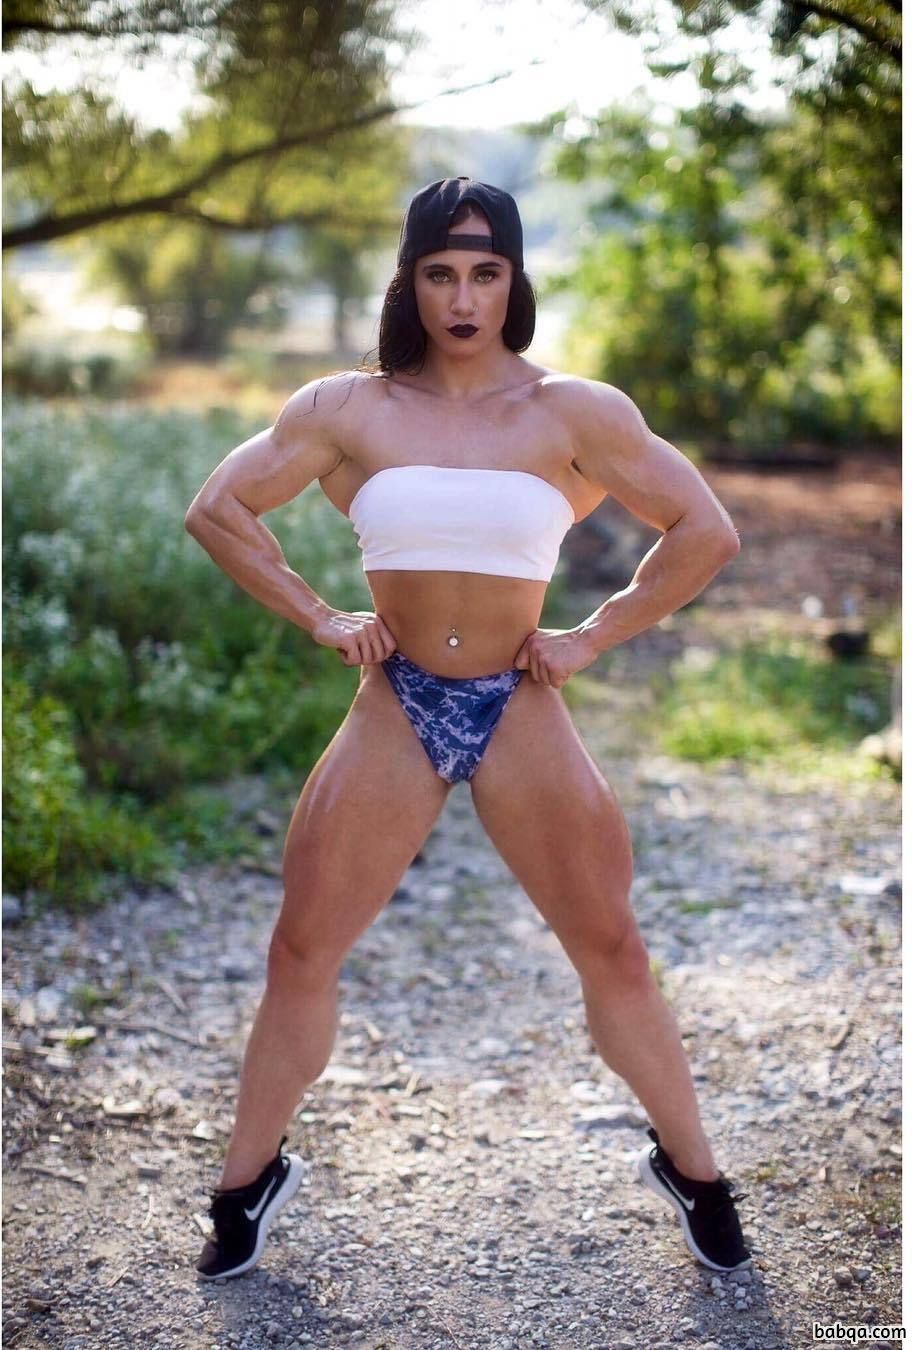 sexy girl with strong body and muscle ass photo from tumblr